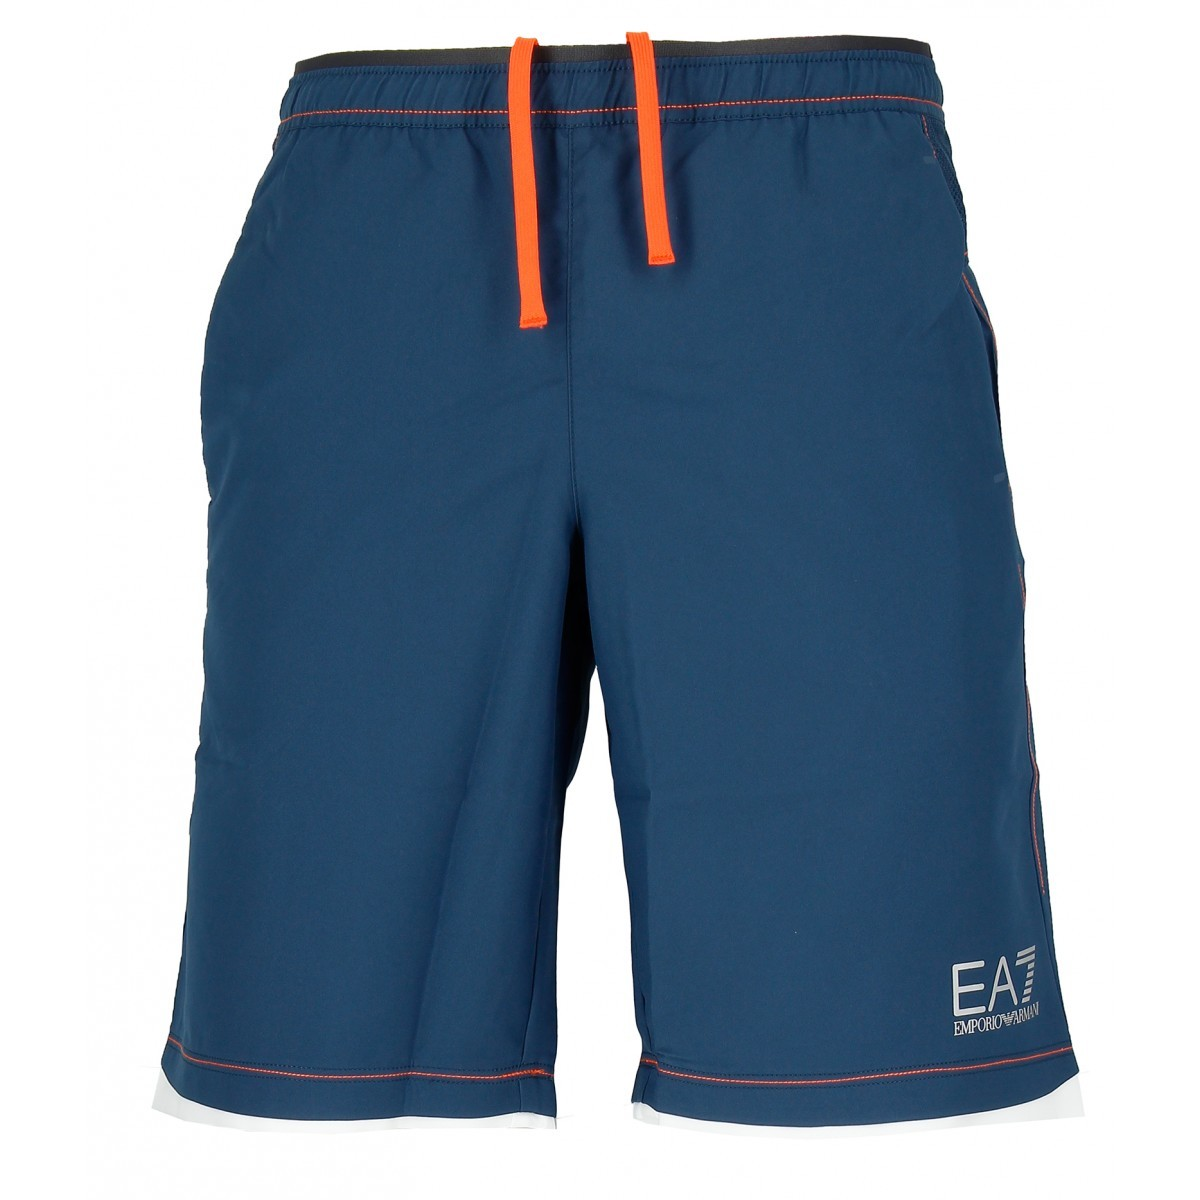 outlet on sale the best huge inventory Short ea7 emporio armani Homme